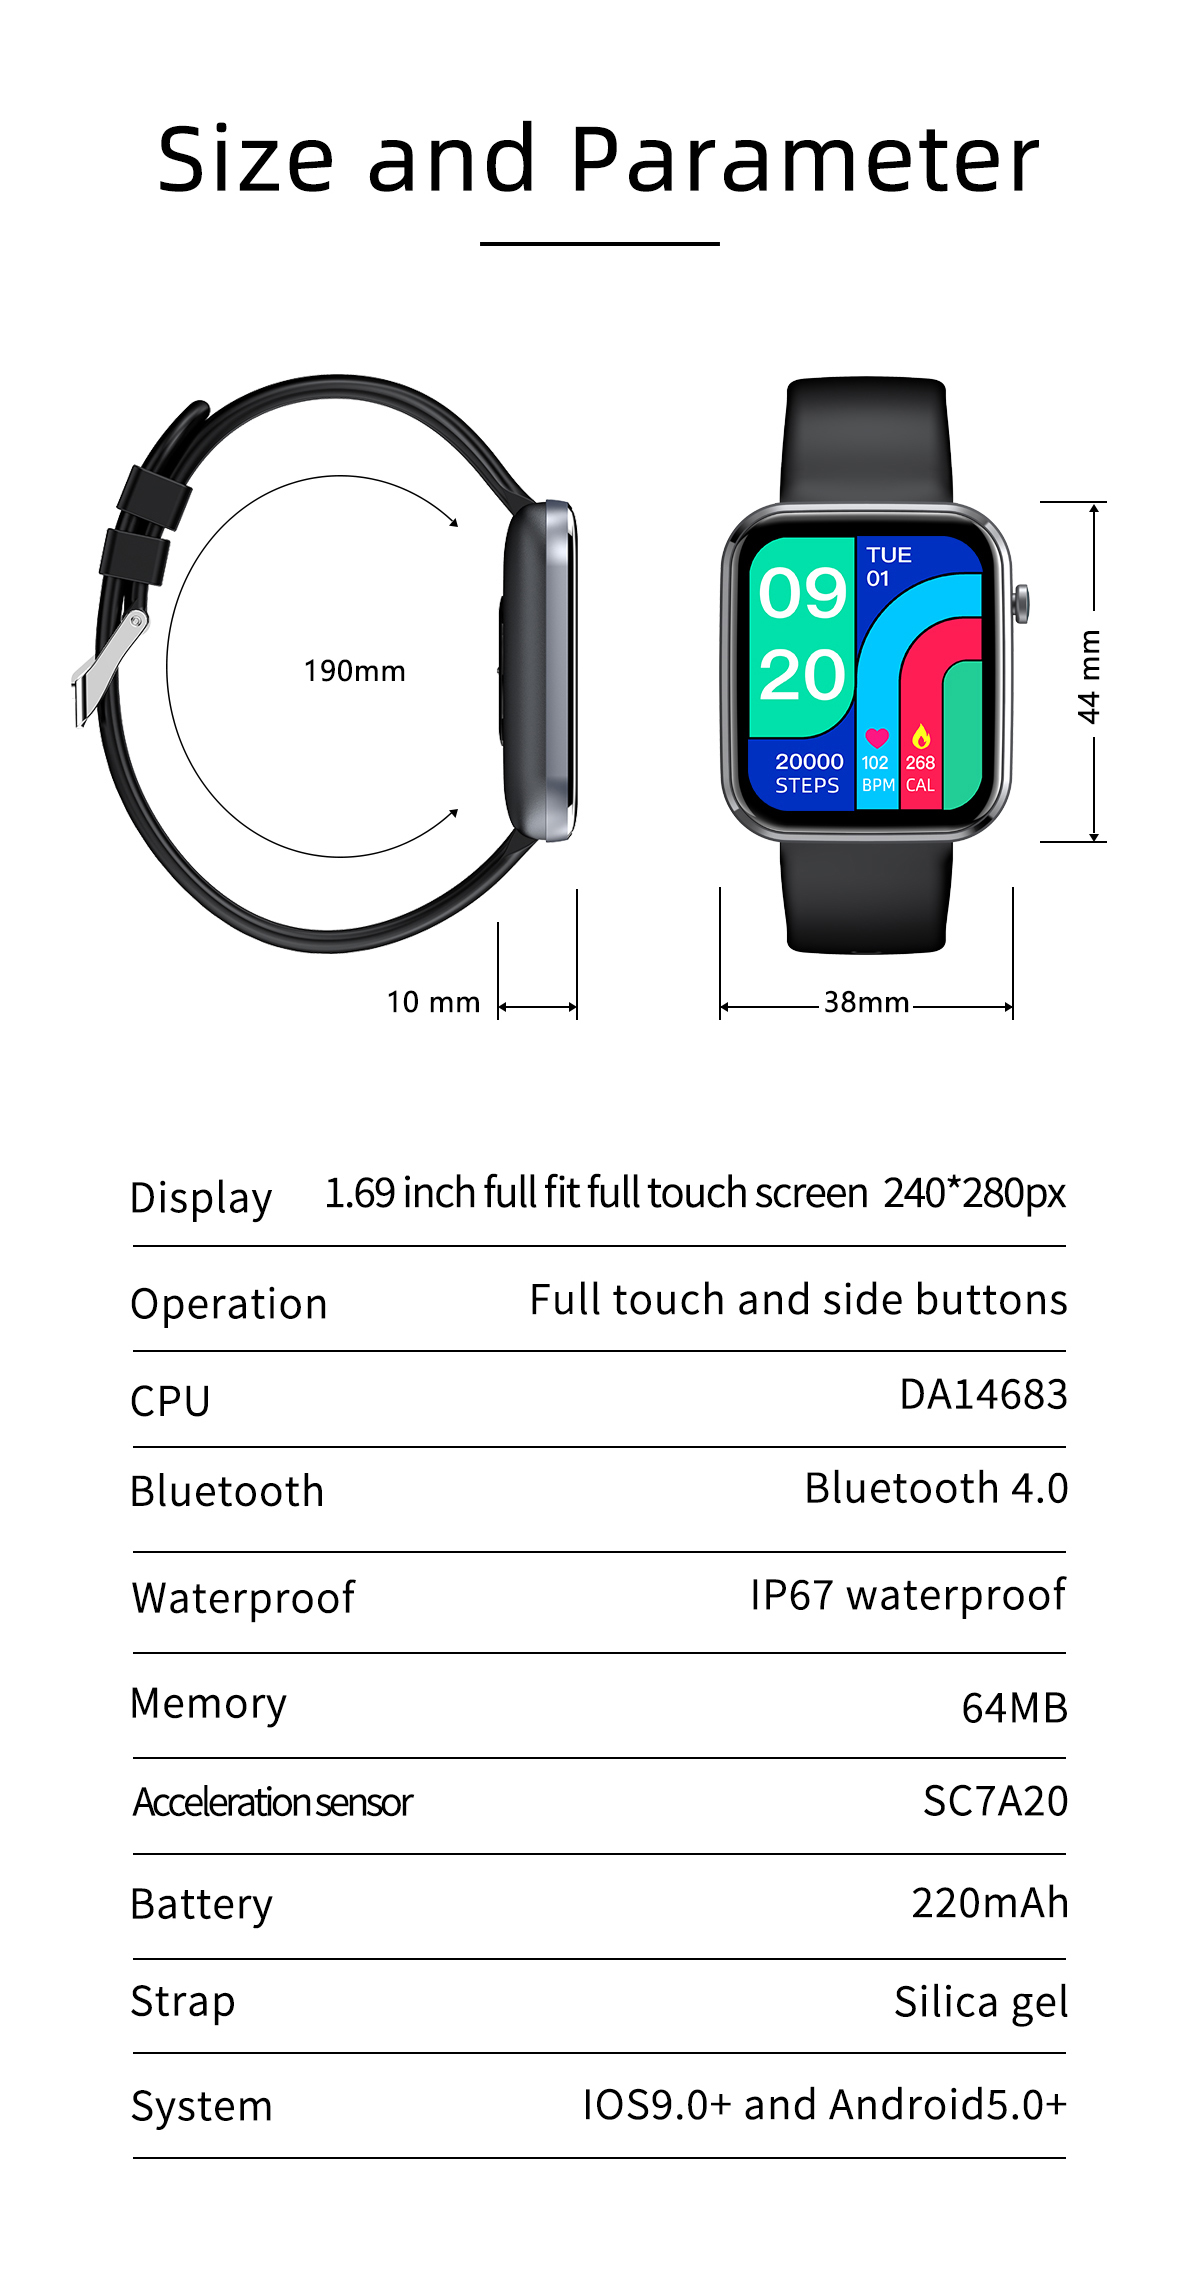 He0a3ad4fcb014a79899b69794a78a42e9 MISIRUN Z15 Smart Watch for Man Women Full Touch Blood Pressure Smart Clock Women watch Smartwatch for IOS Android Xiaomi Phone